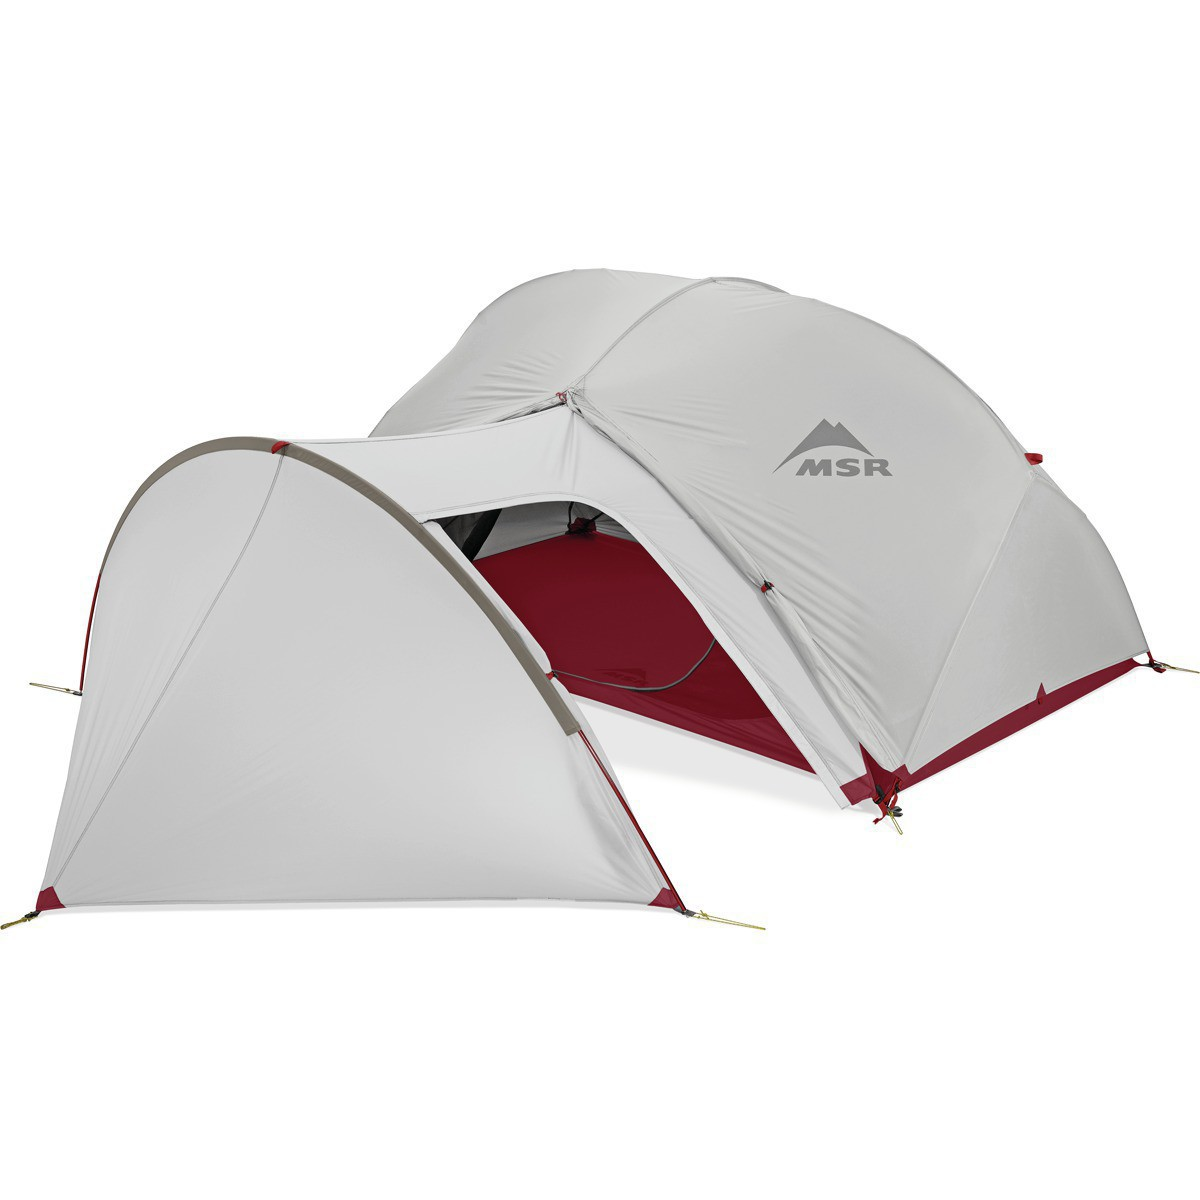 Gear Shed For Hubba And Hubba Hubba Tents Msr